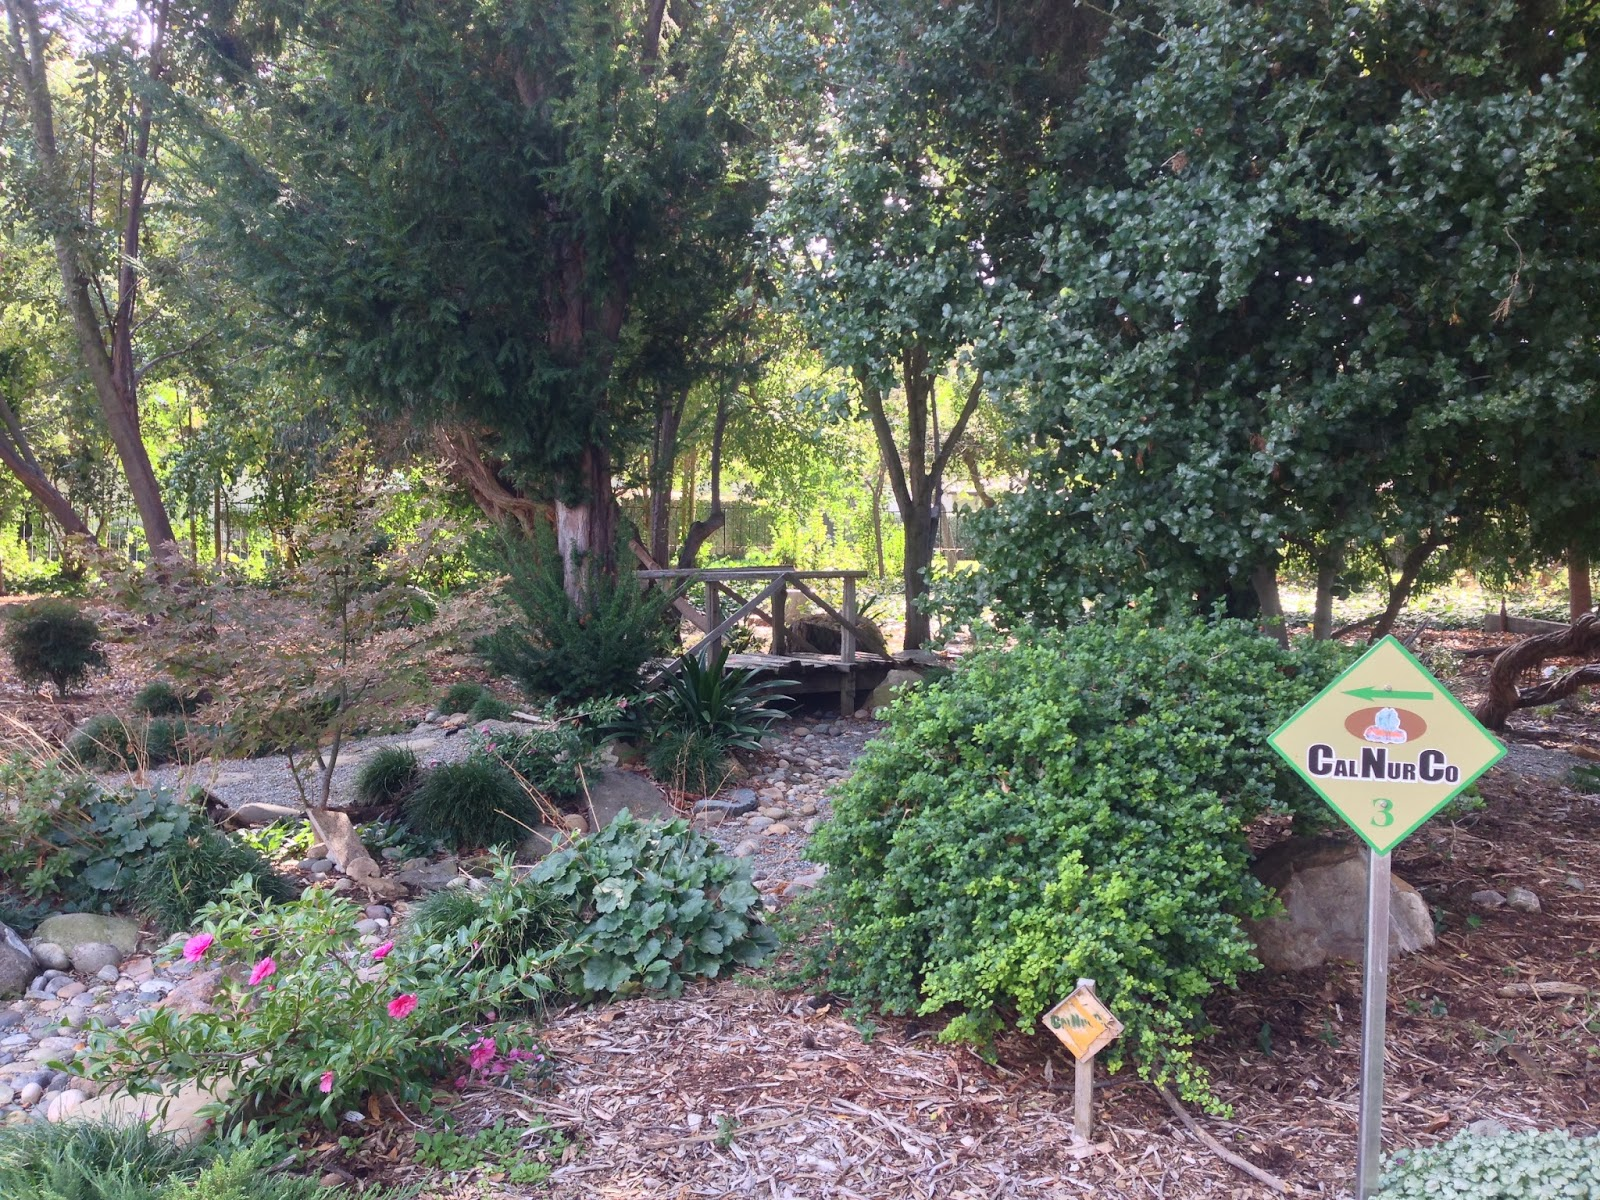 A Small Pond Arch Bridge And Trees From An Asia Were Featured Here California Nursery Sold Variety Of Ornamental Plants Frequently The